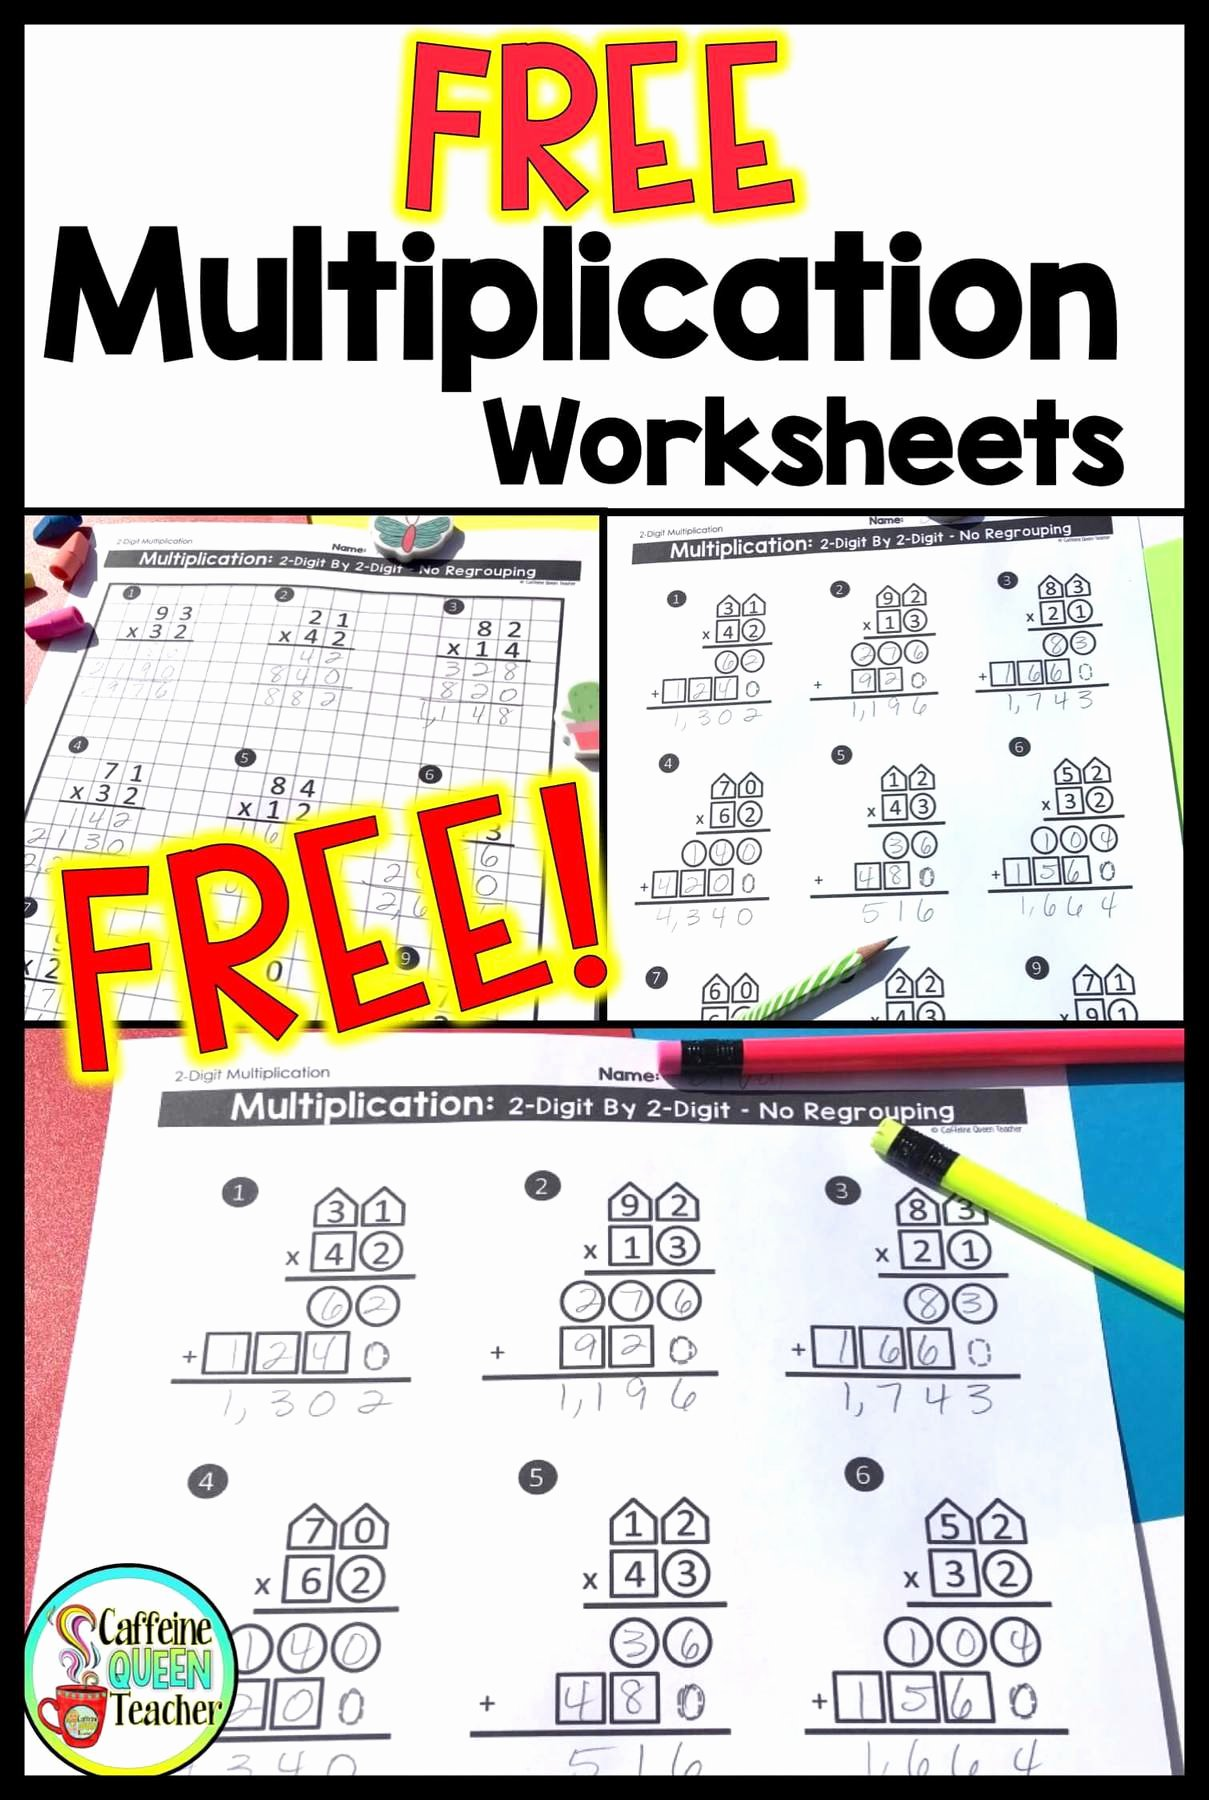 Standard Algorithm Multiplication Worksheets New 2 Digit Multiplication Worksheets Differentiated Caffeine